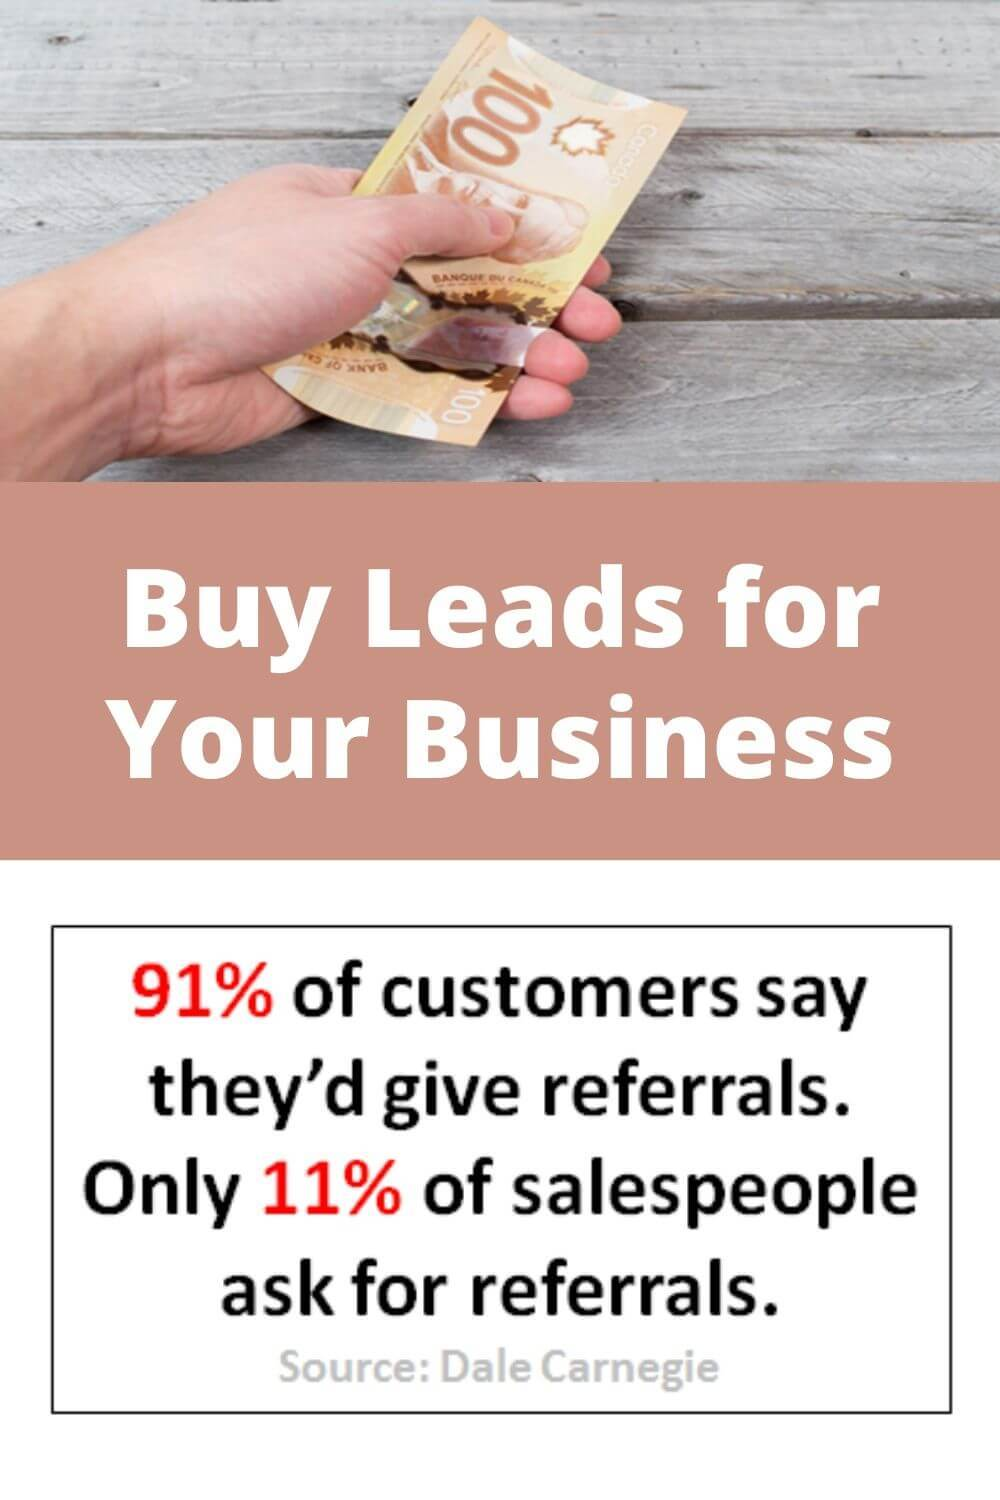 Buy Leads for Your Business